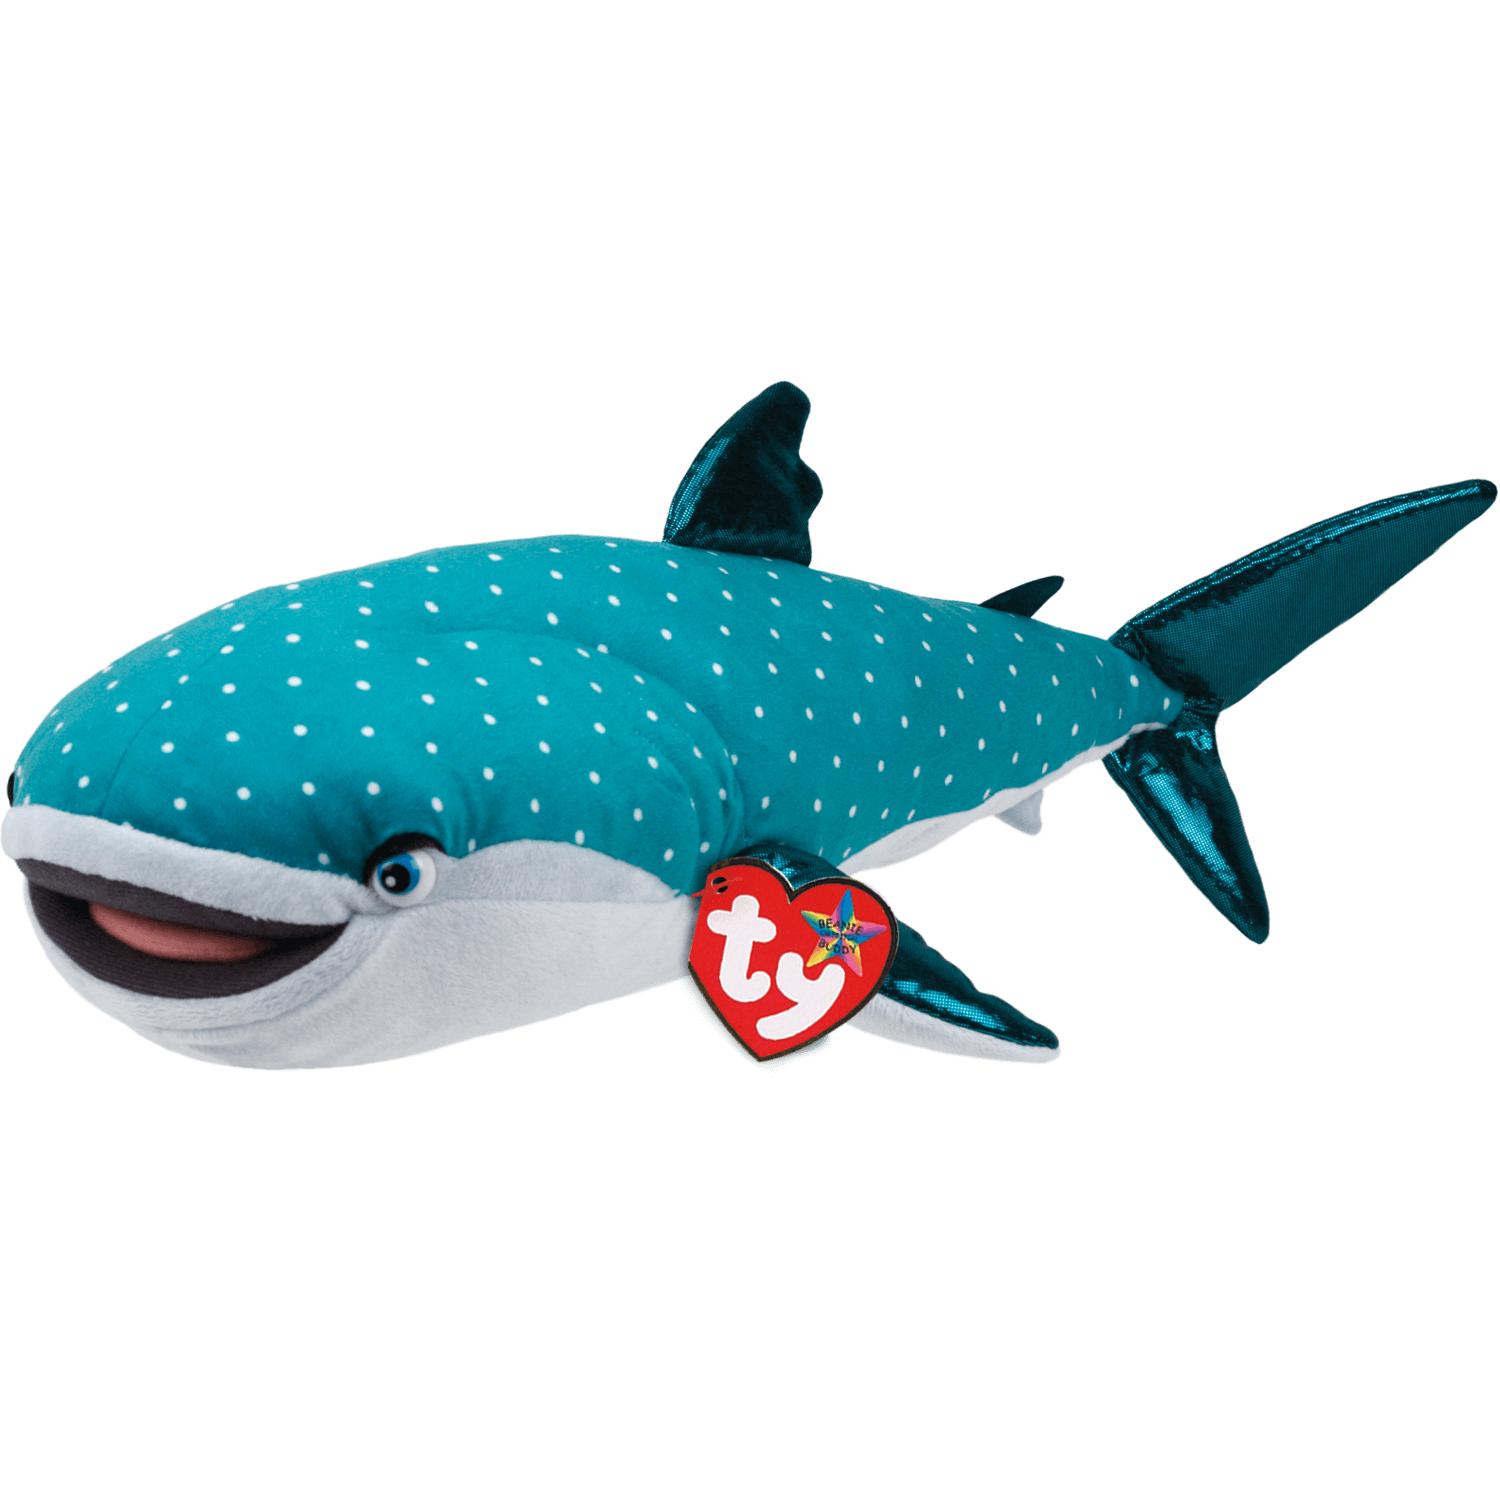 Destiny - Whale Shark Medium From Finding Dory